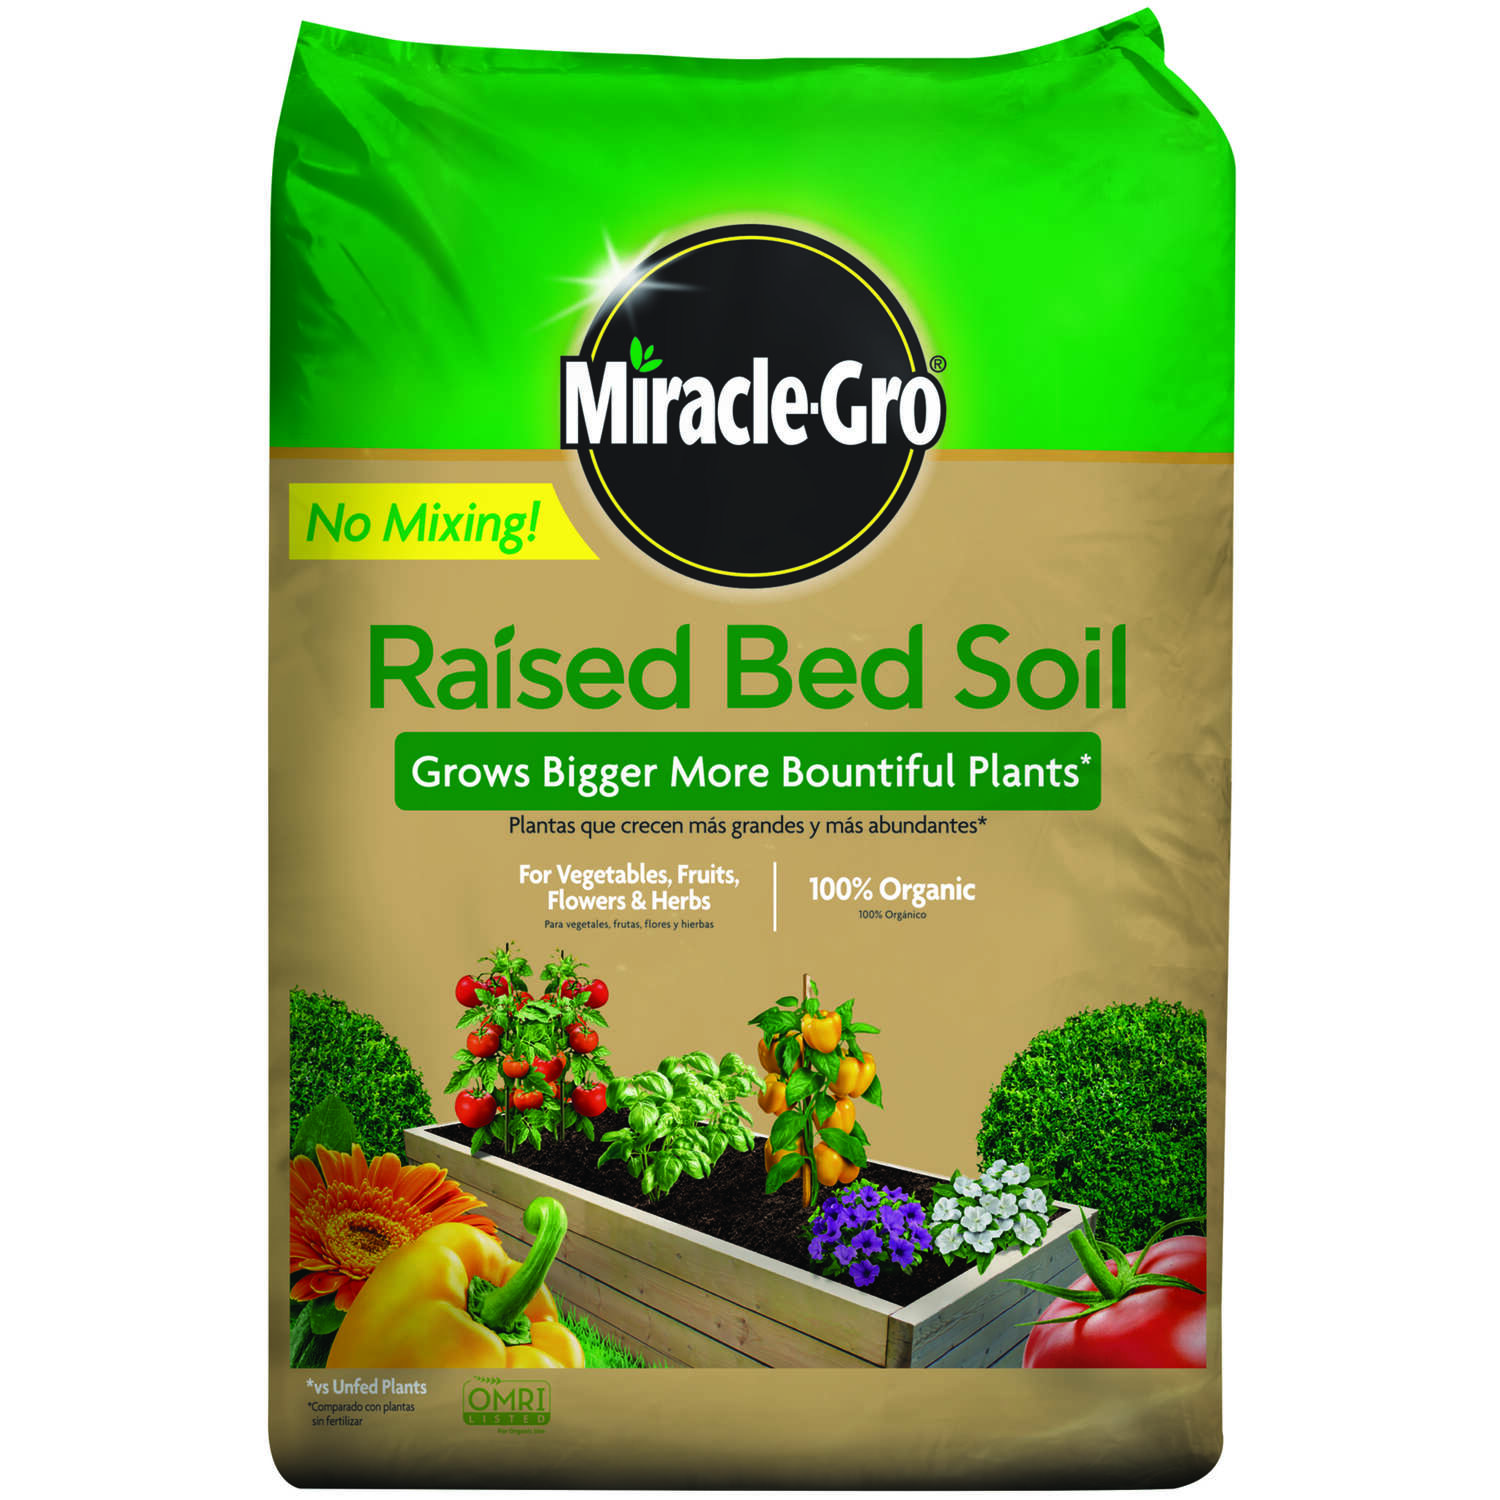 Miracle-Gro  Organic 0.09-0.08-0.09  Raised Bed Soil  1.5